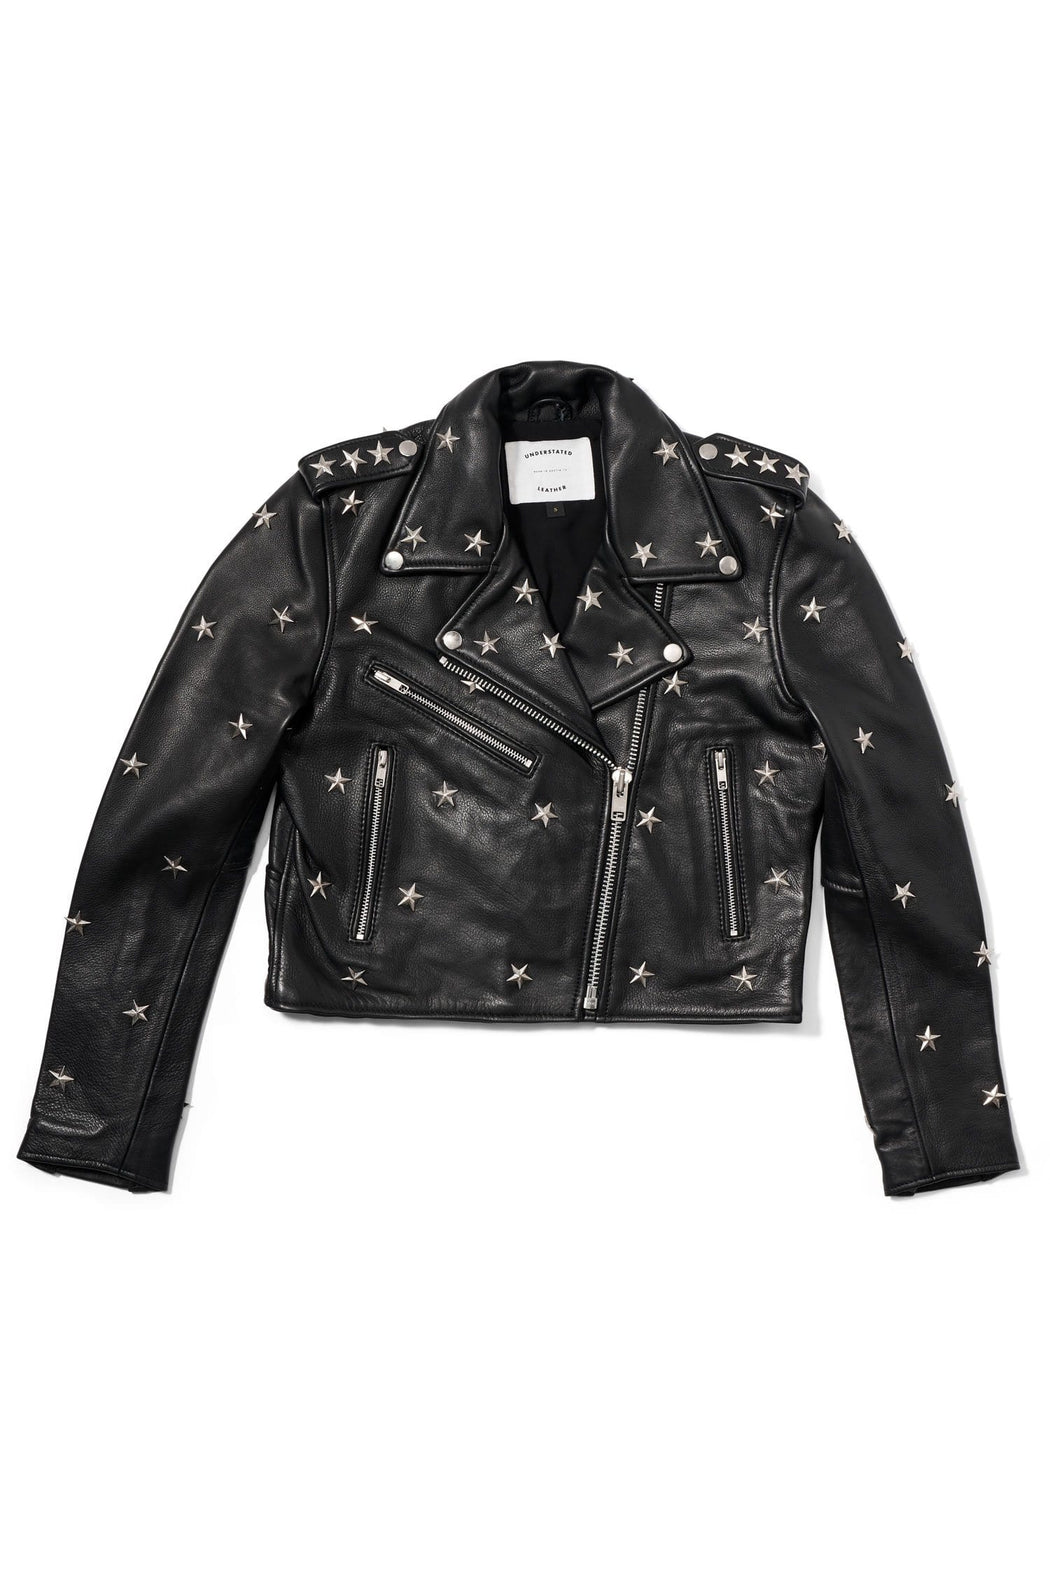 STAR STUDDED MERCY CROP JACKET